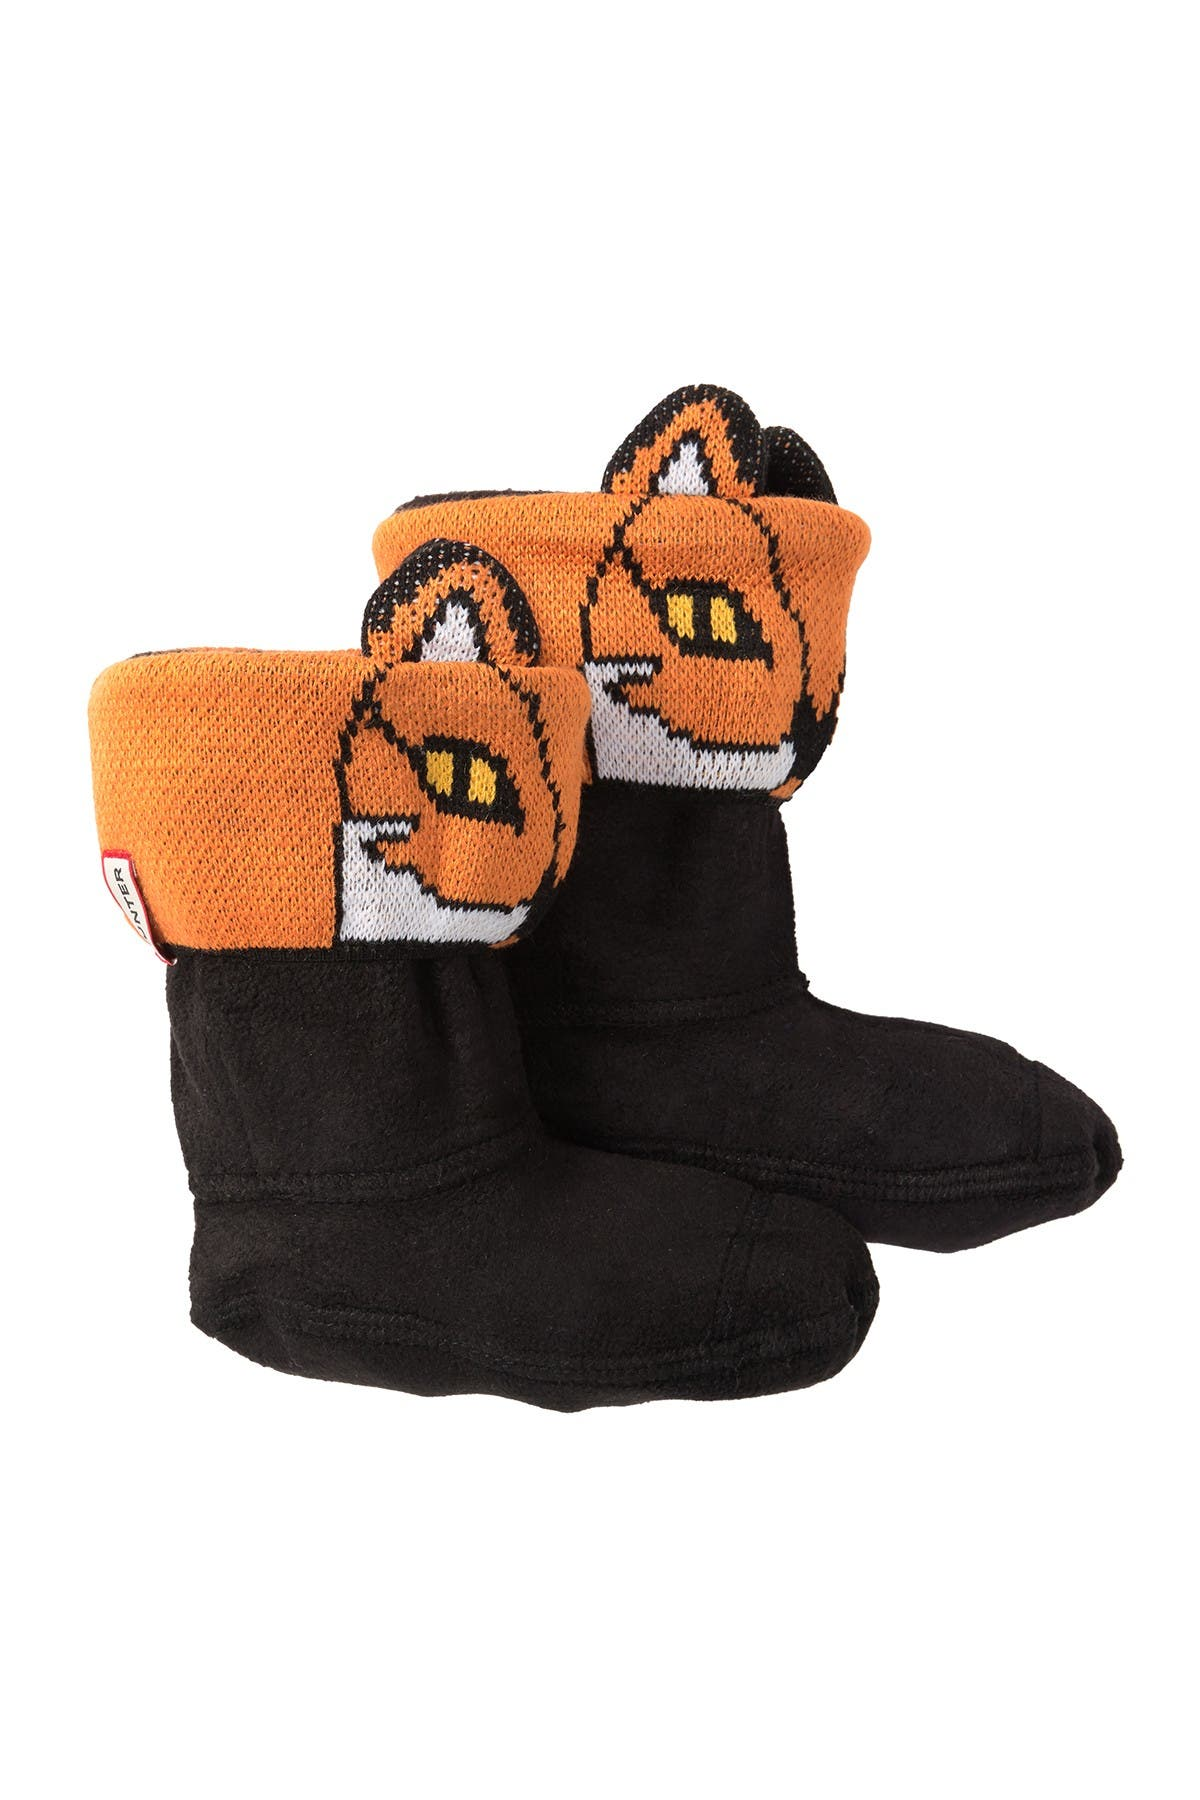 Image of Hunter Cheeky Fox Cuff Boot Sock